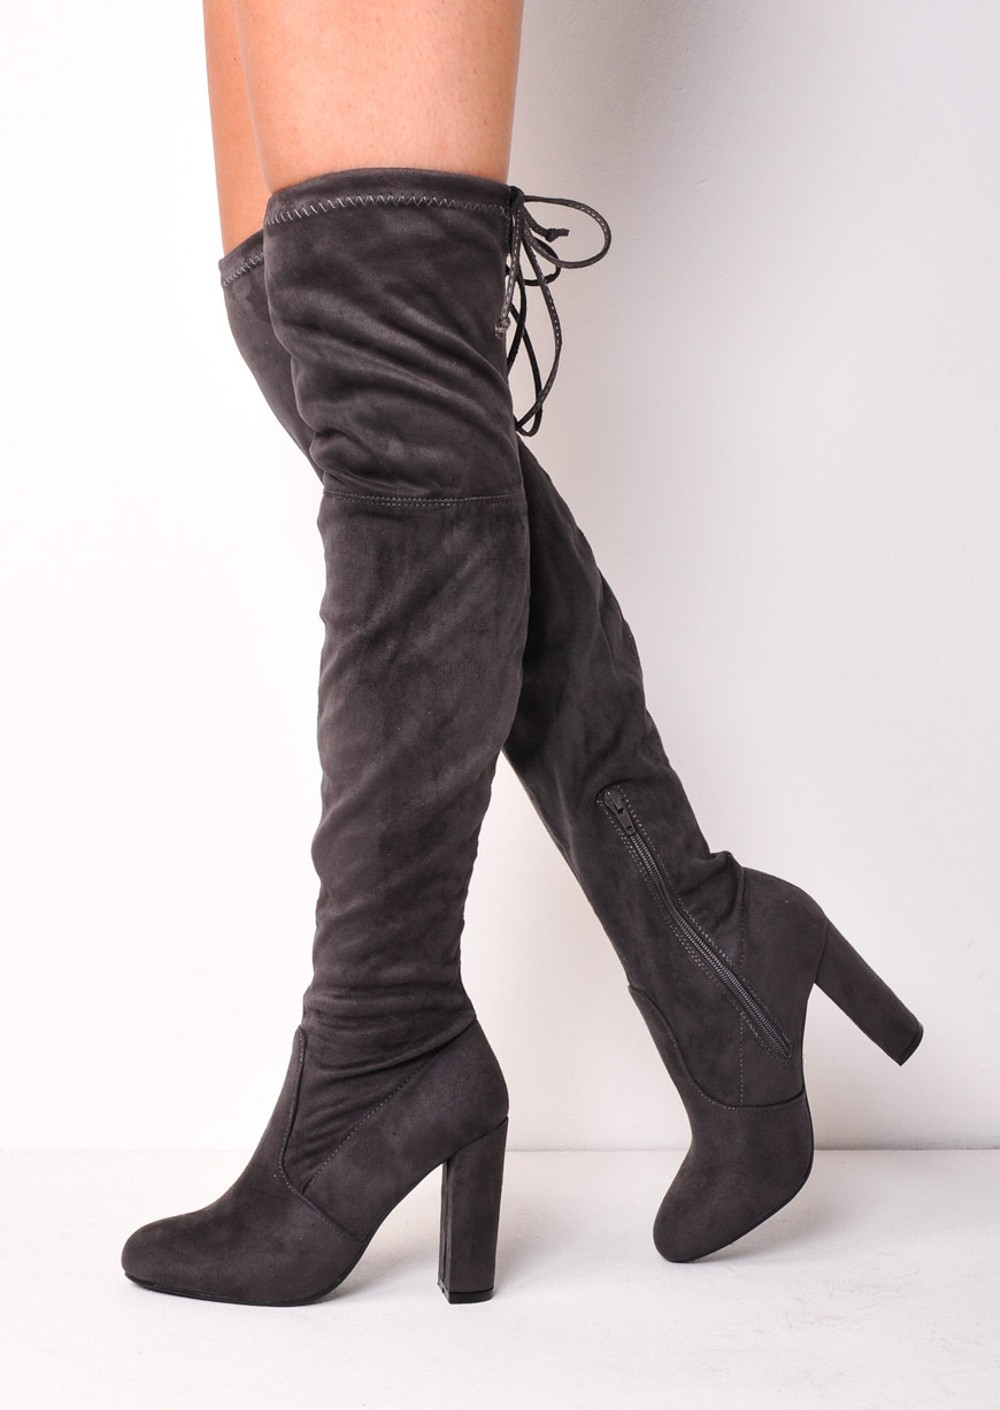 Long Thigh High Boots - Cr Boot